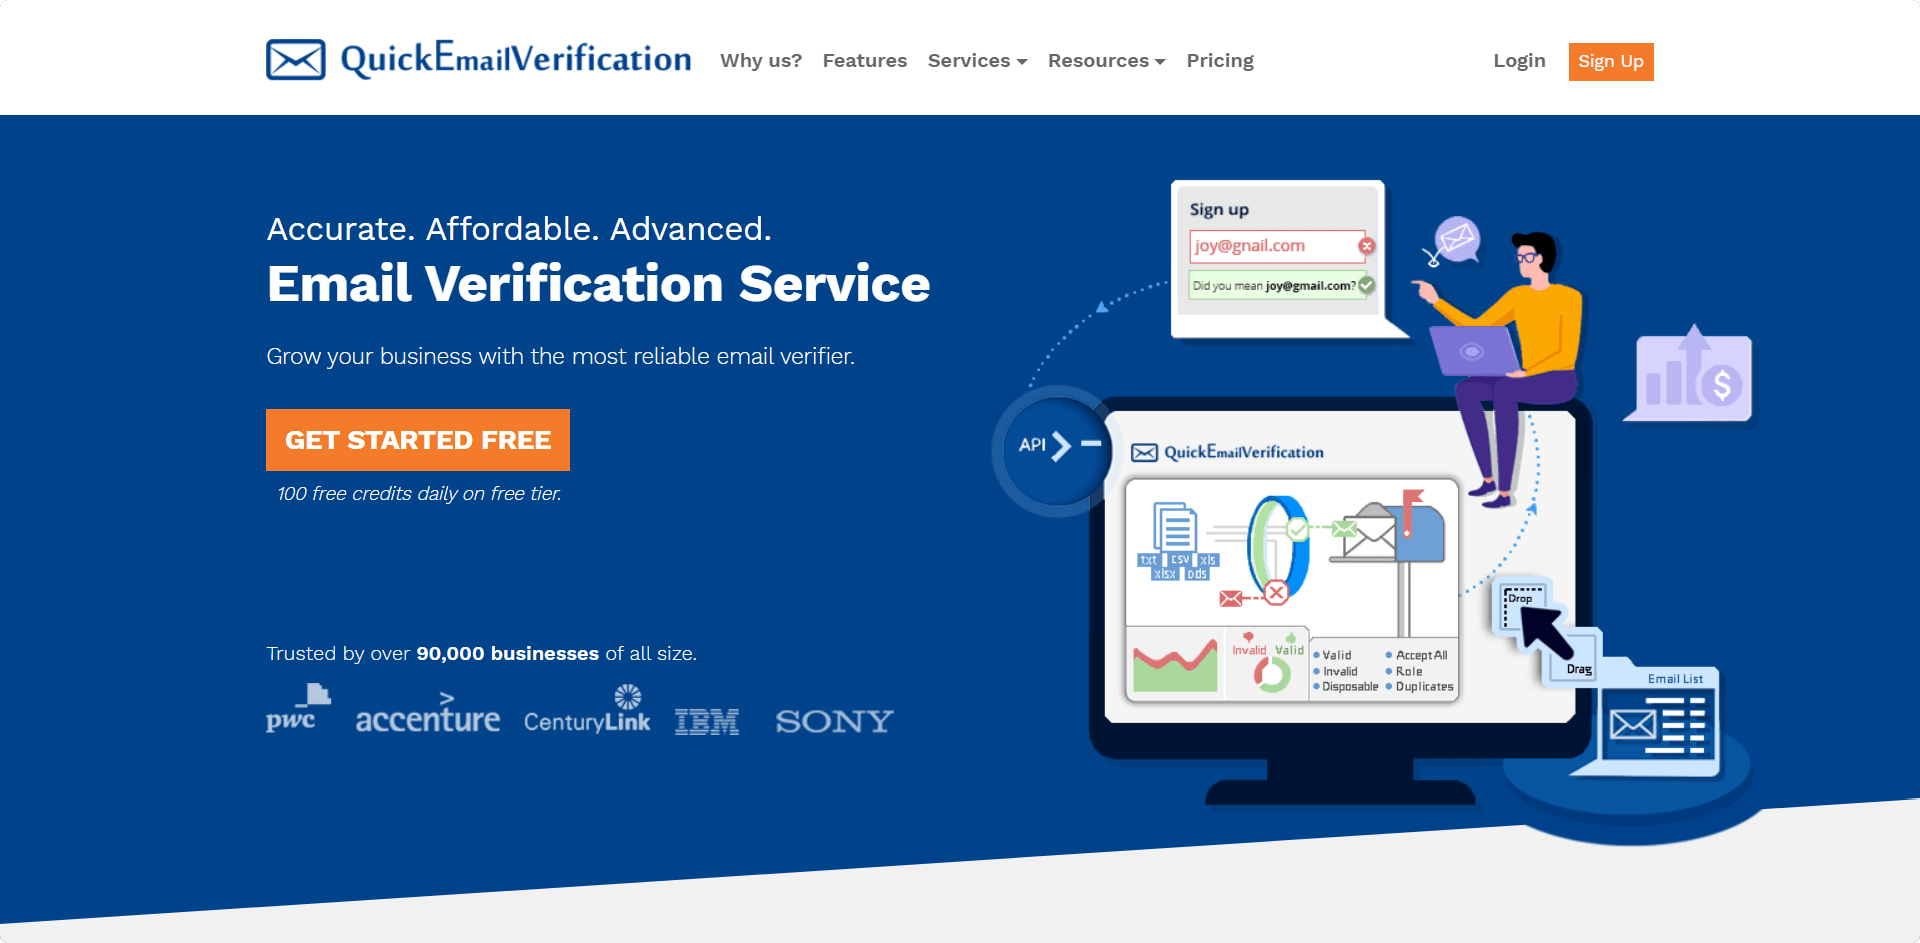 QuickEmailVerification review